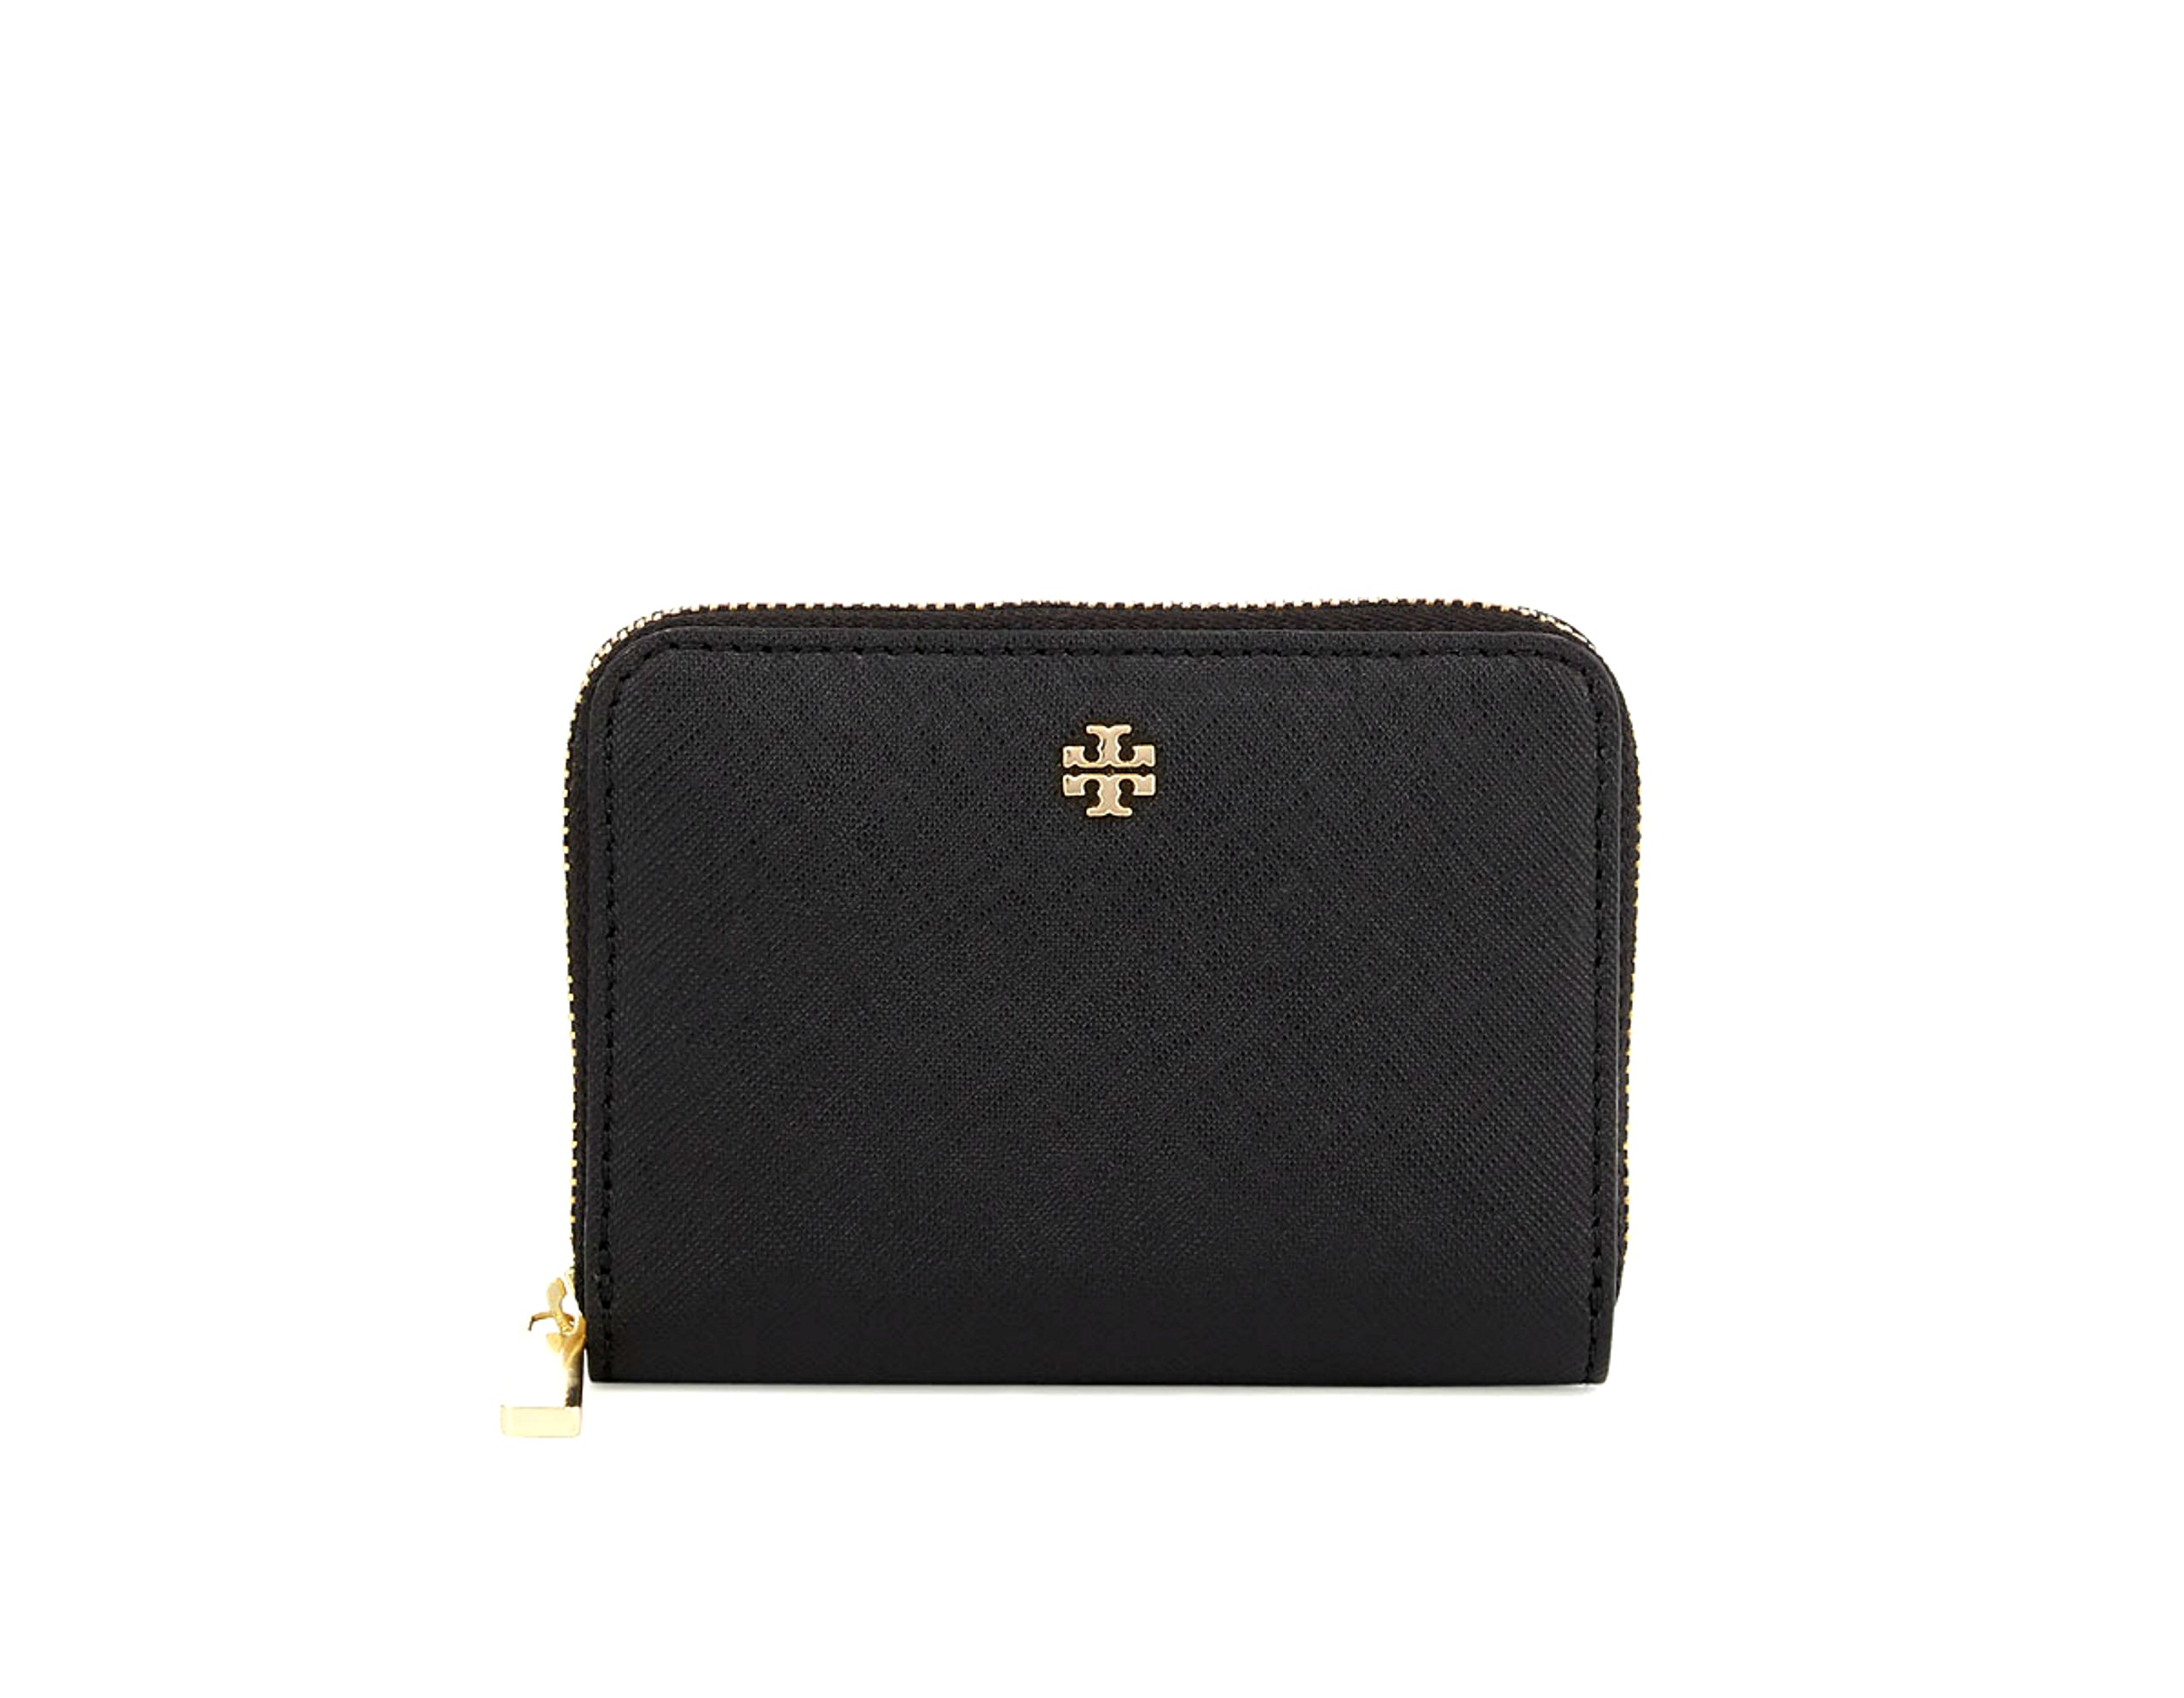 Tory Burch Emerson Zip Coin Case Wallet 47391